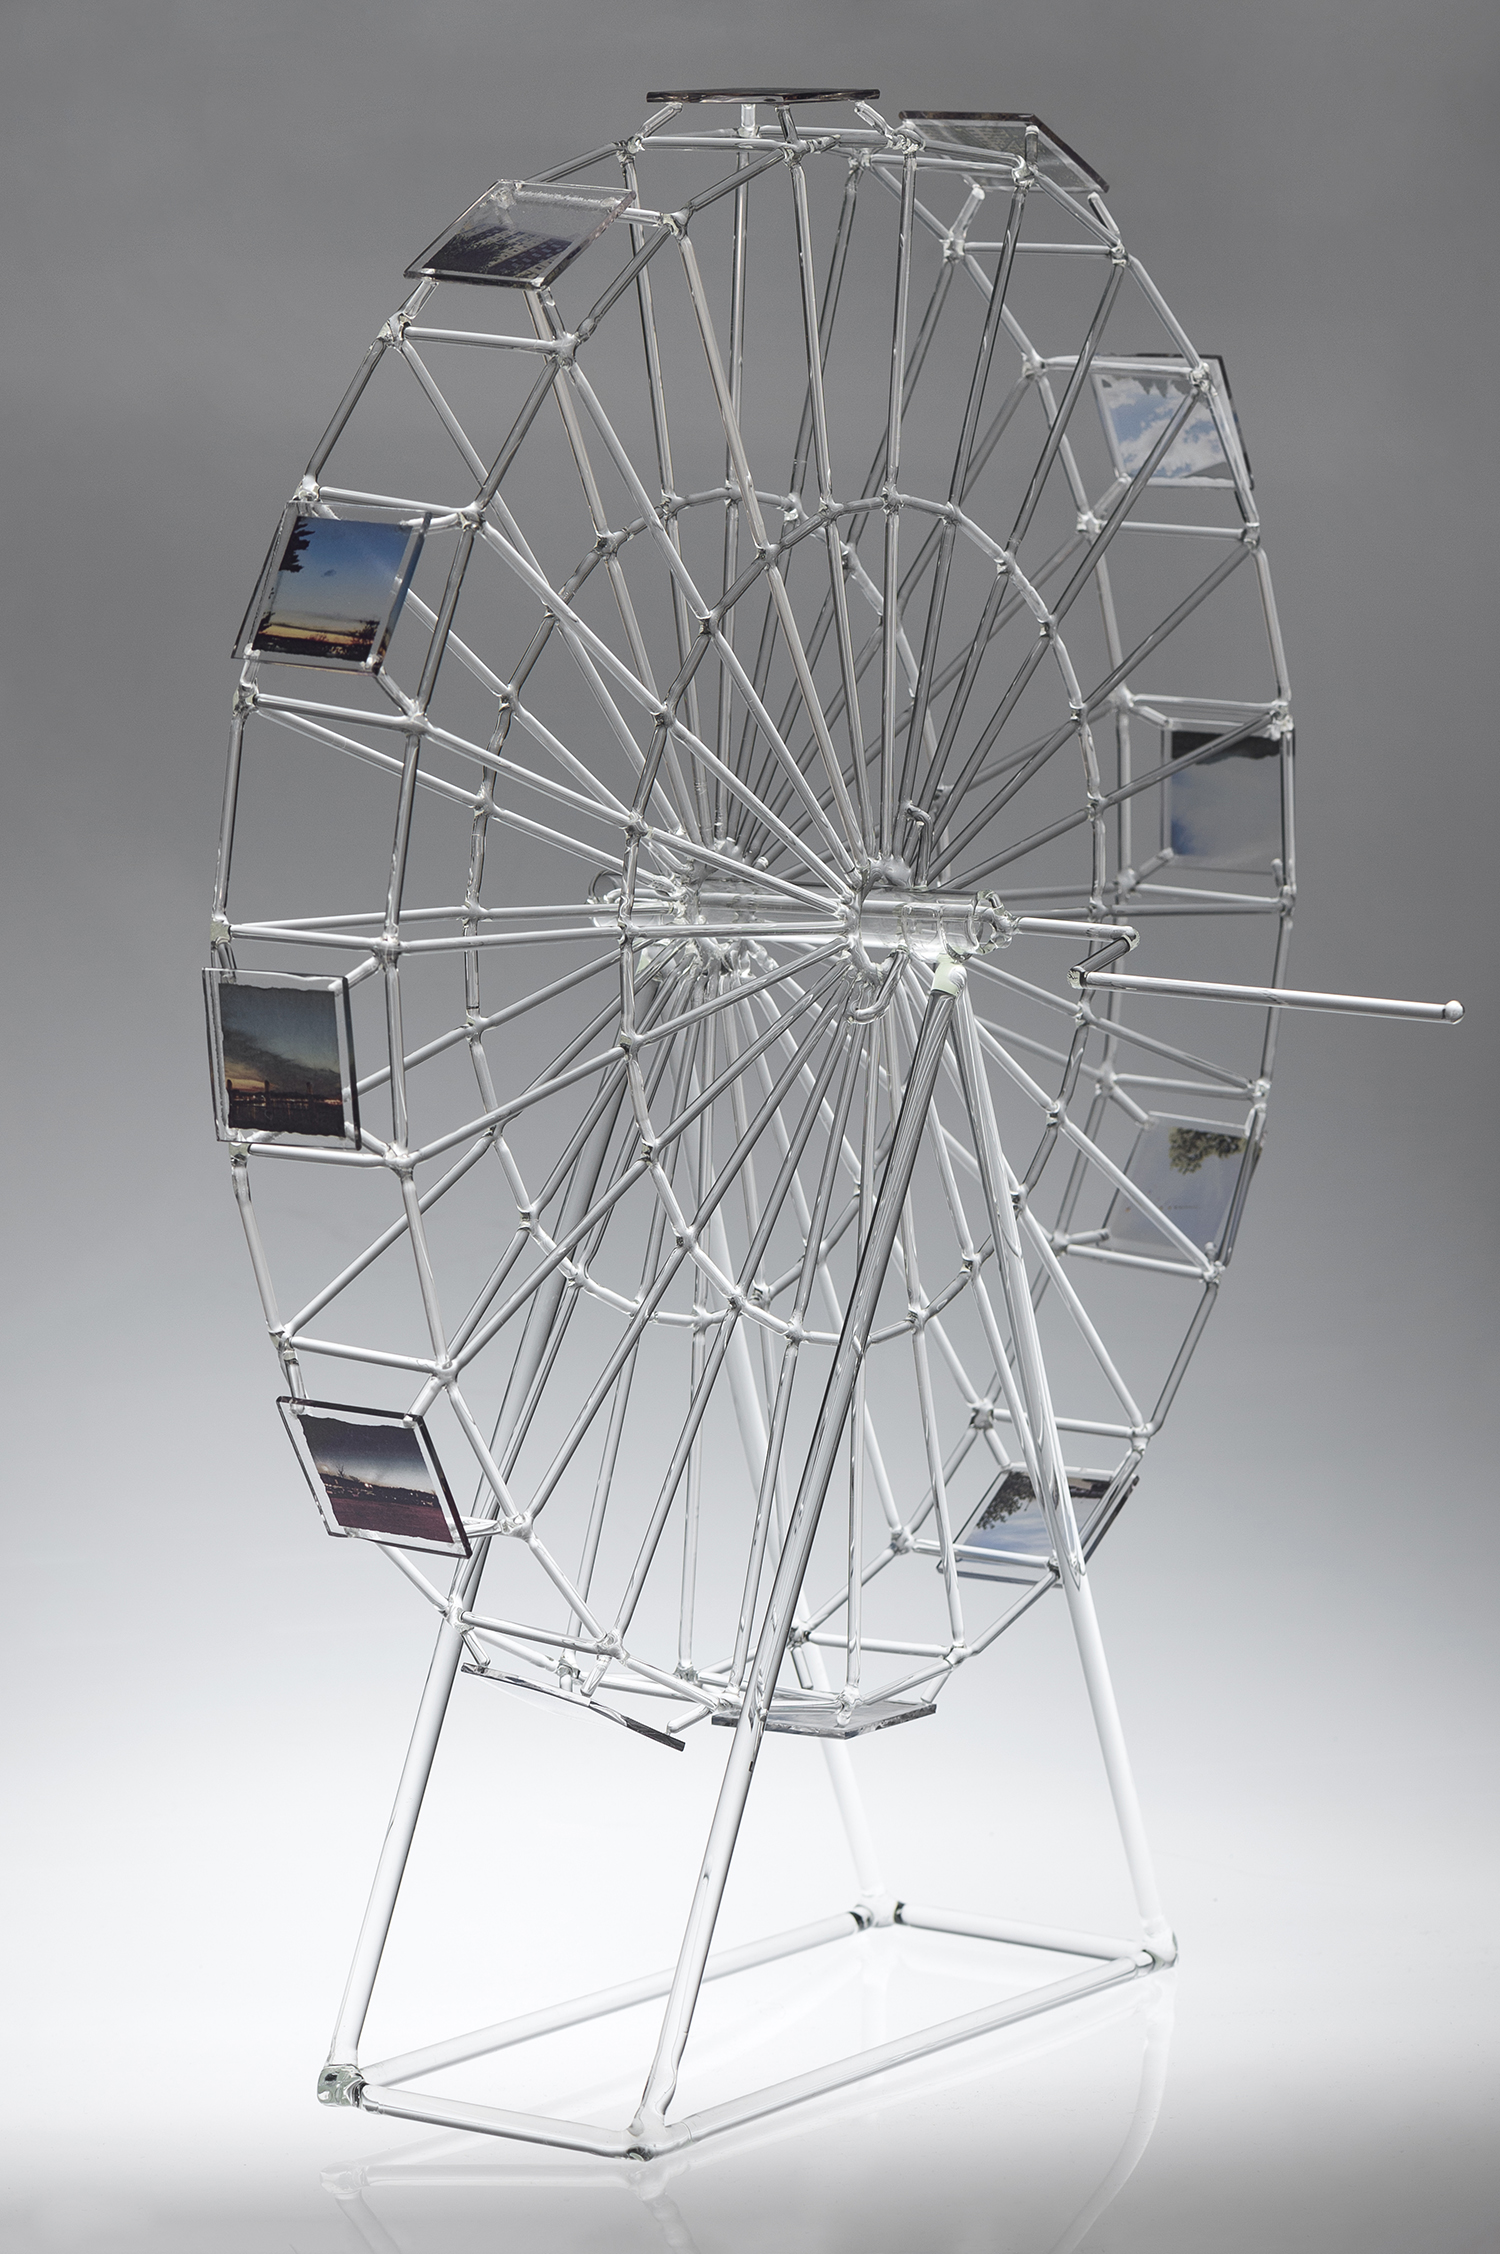 small glass ferris wheel with images on the outside